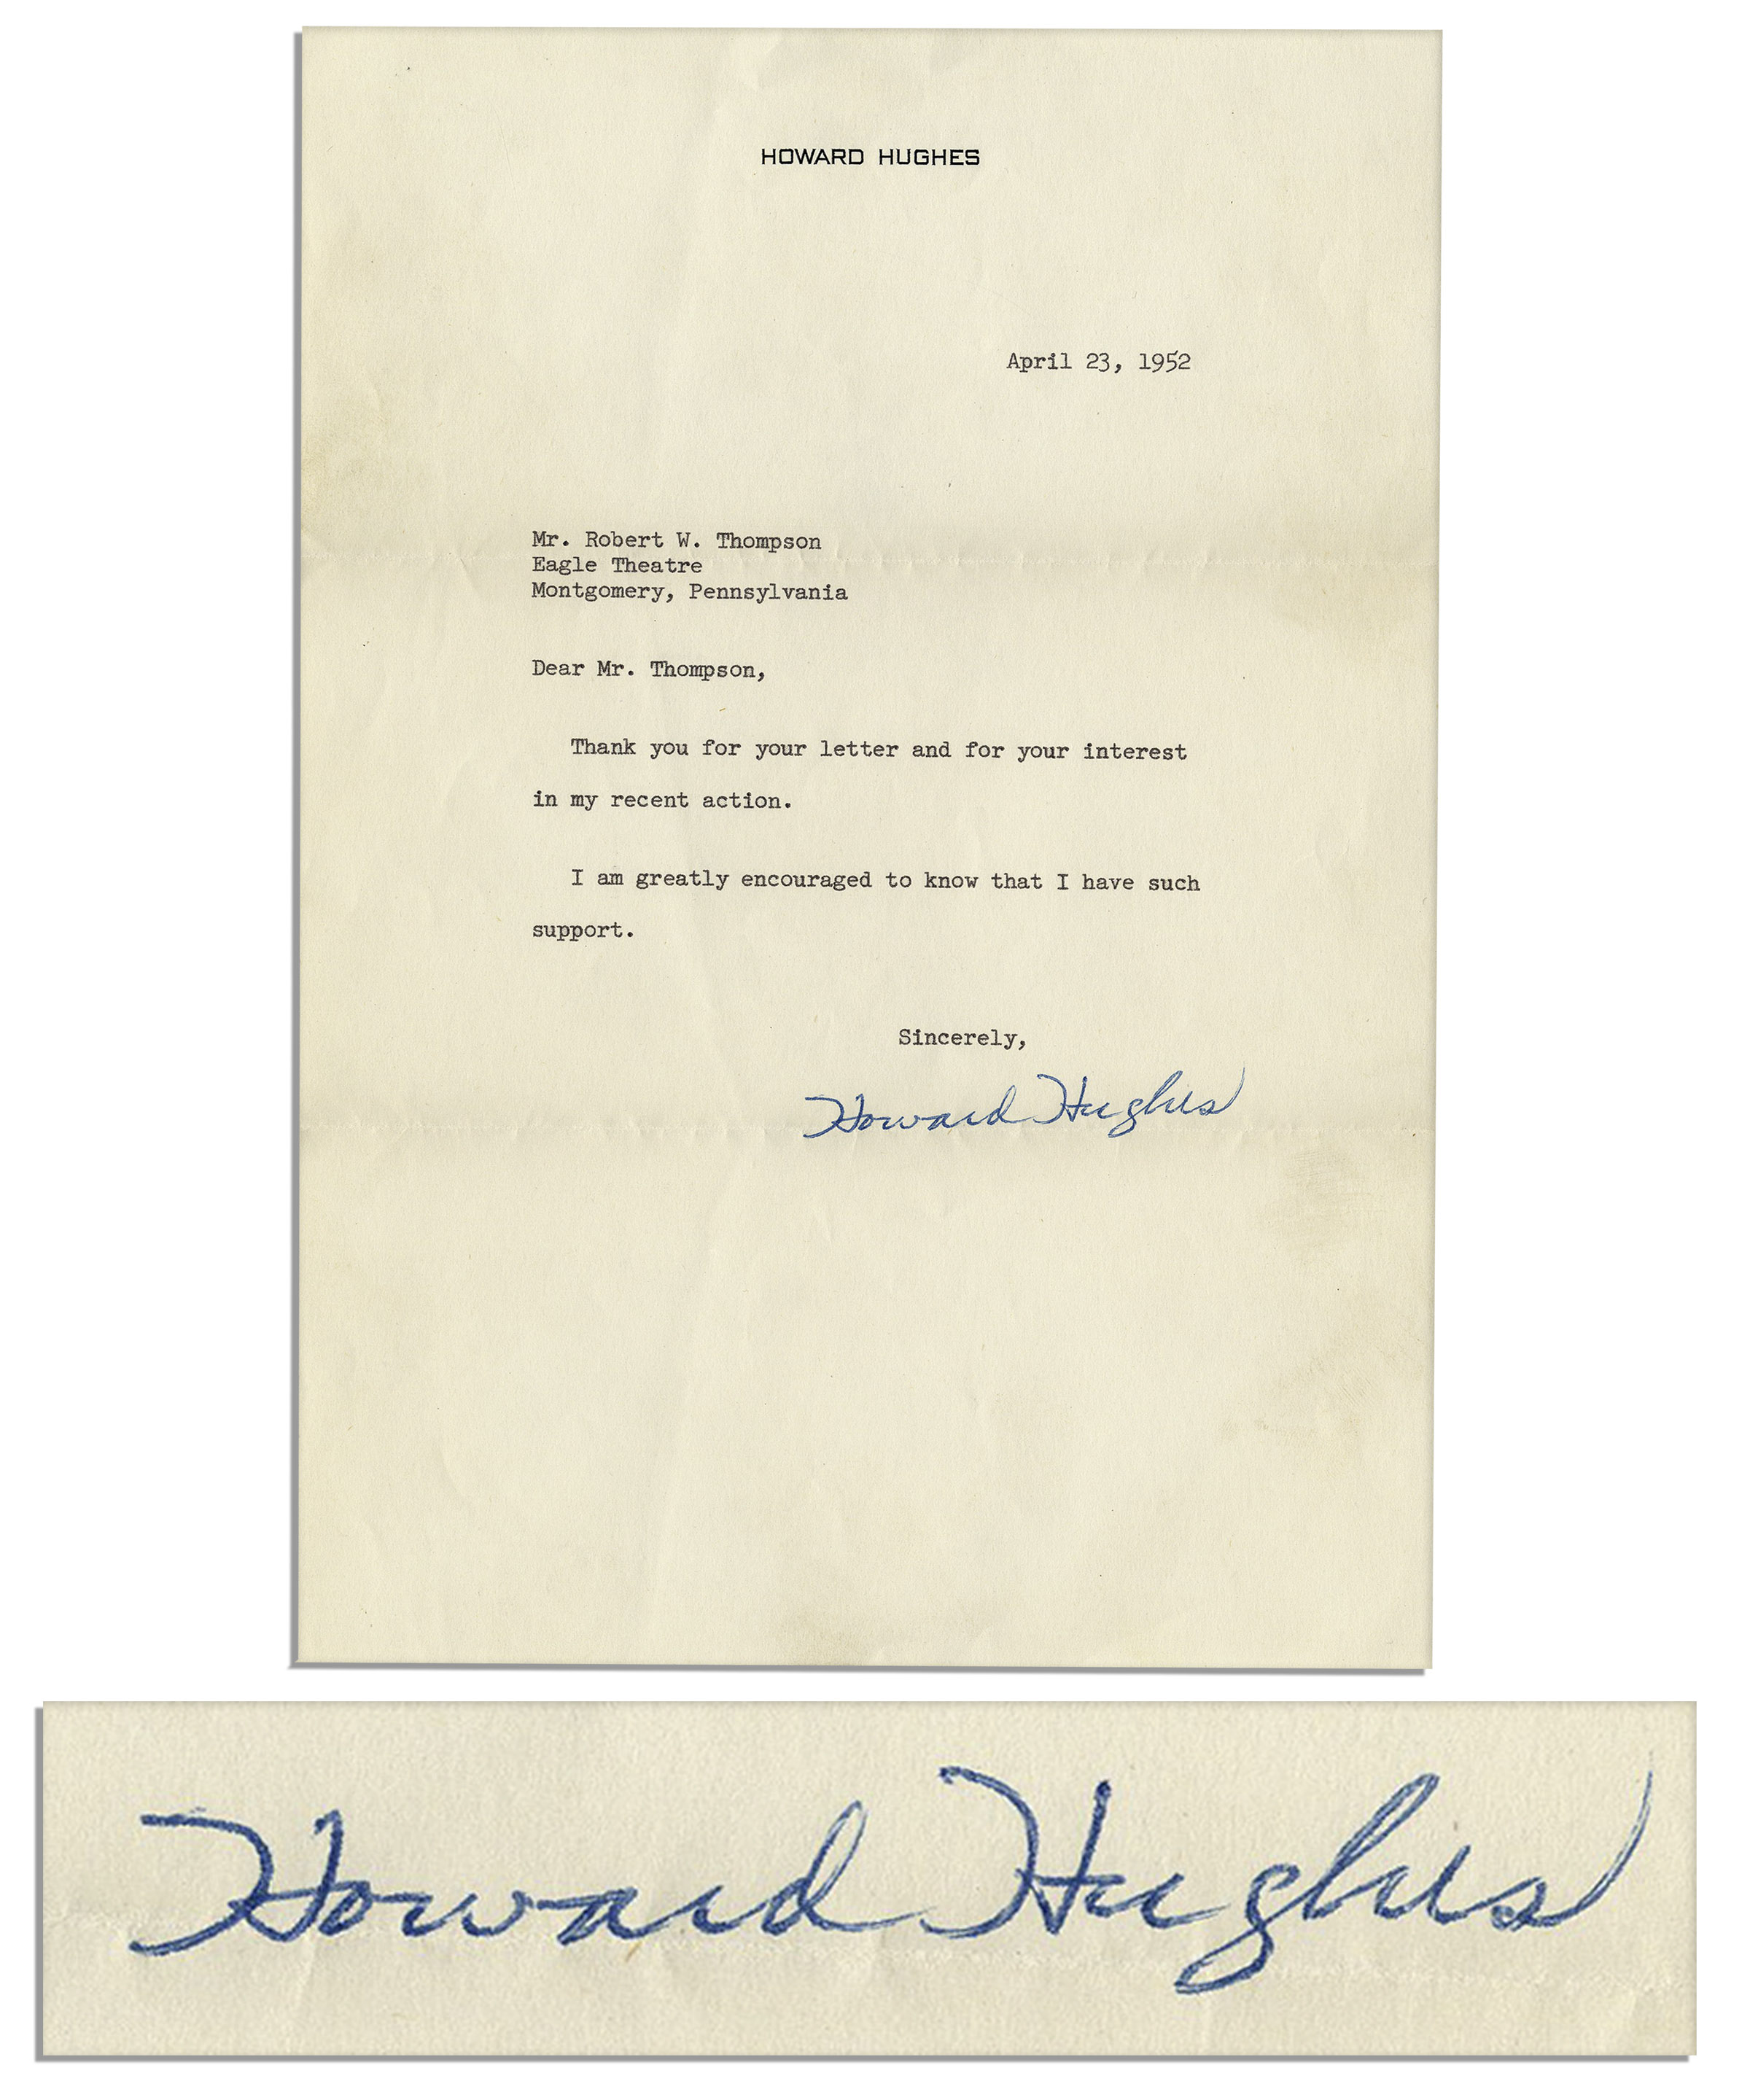 Howard Hughes Autograph